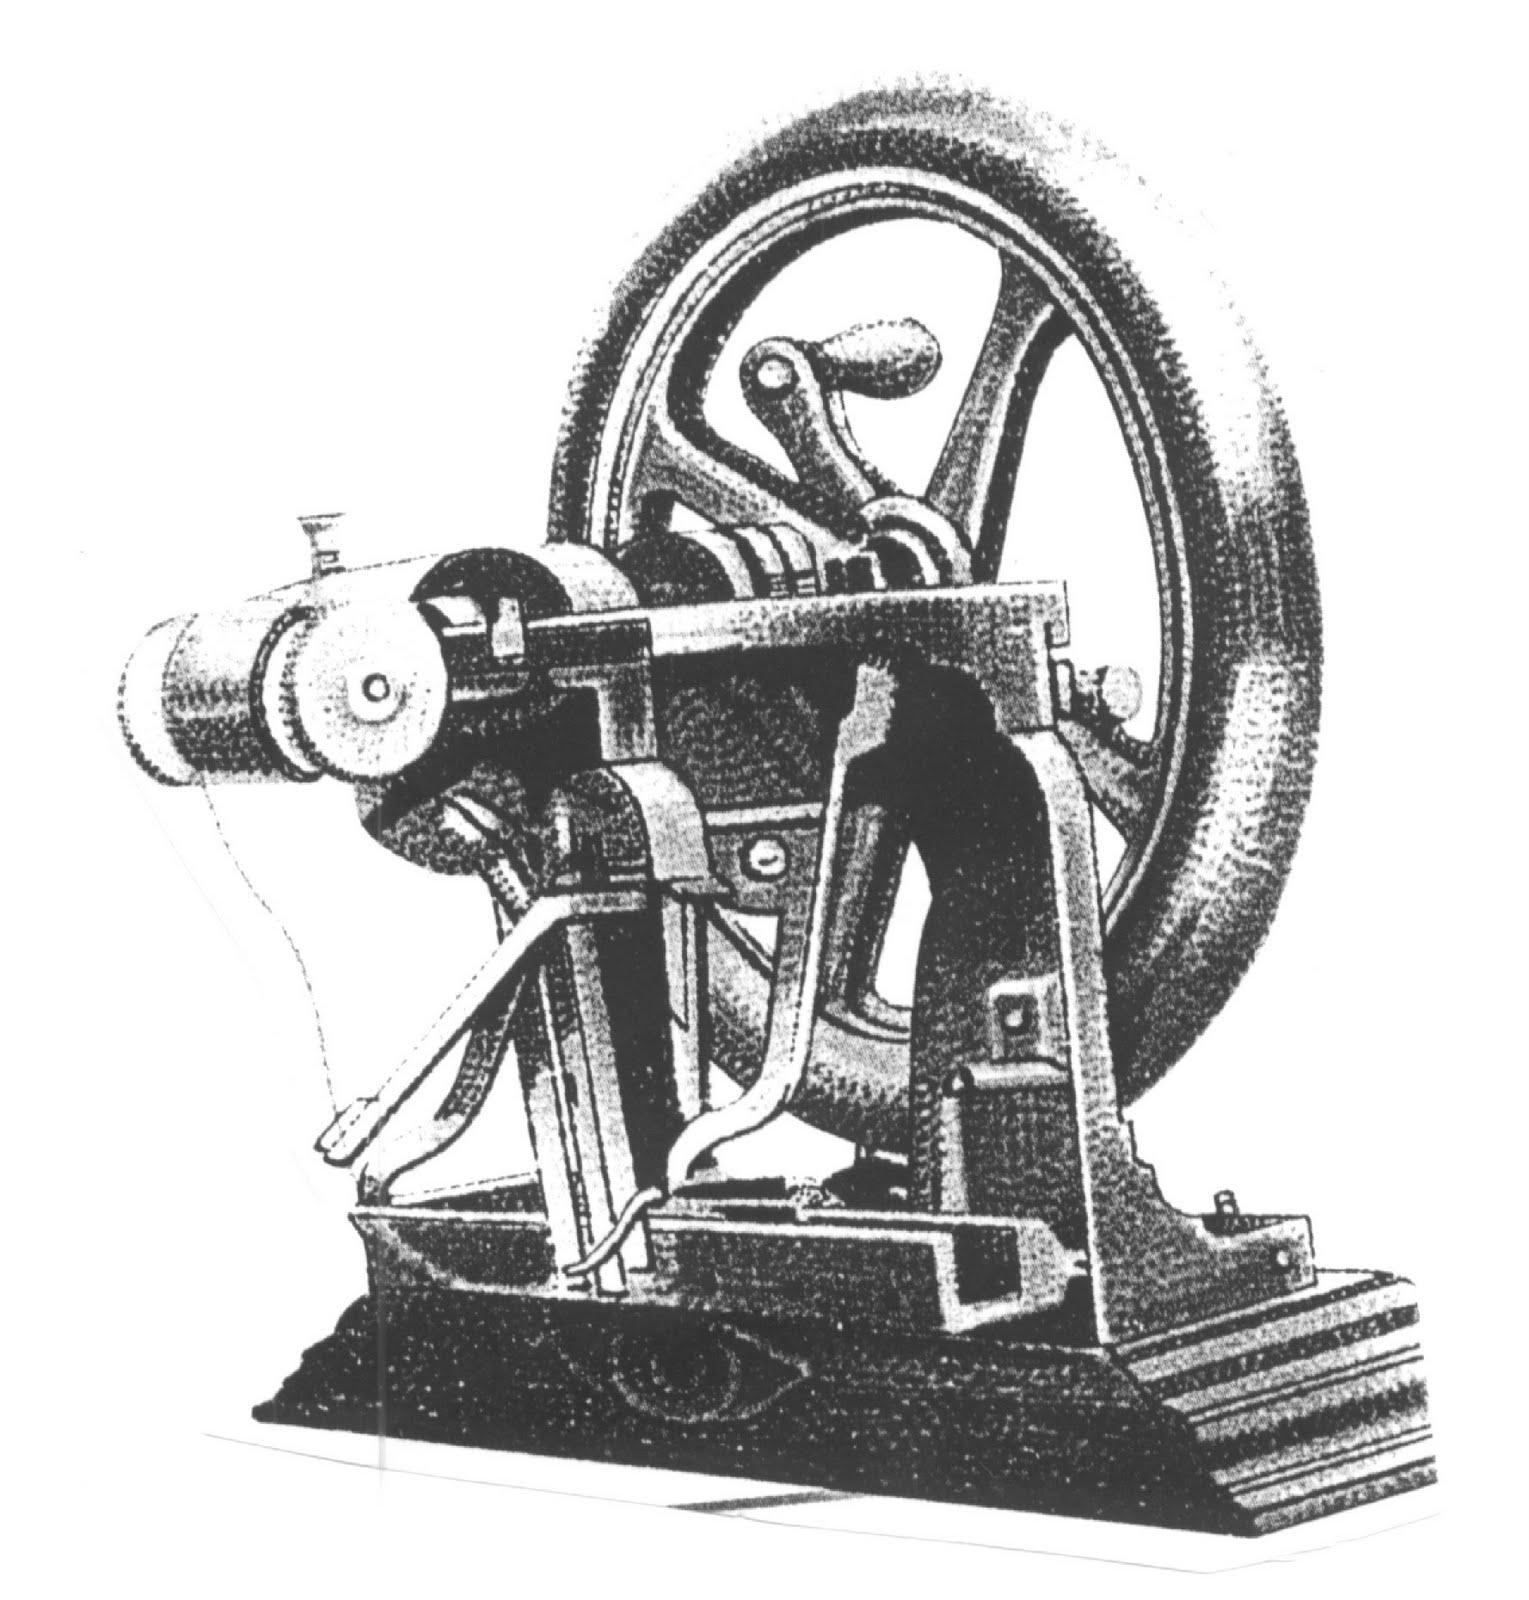 inventions during the industrial revolution Cotton gin mule cast iron flying shuttle water frame spinnig jerry seed drill rocket locomotive compressed steam powered loom self acting mule.